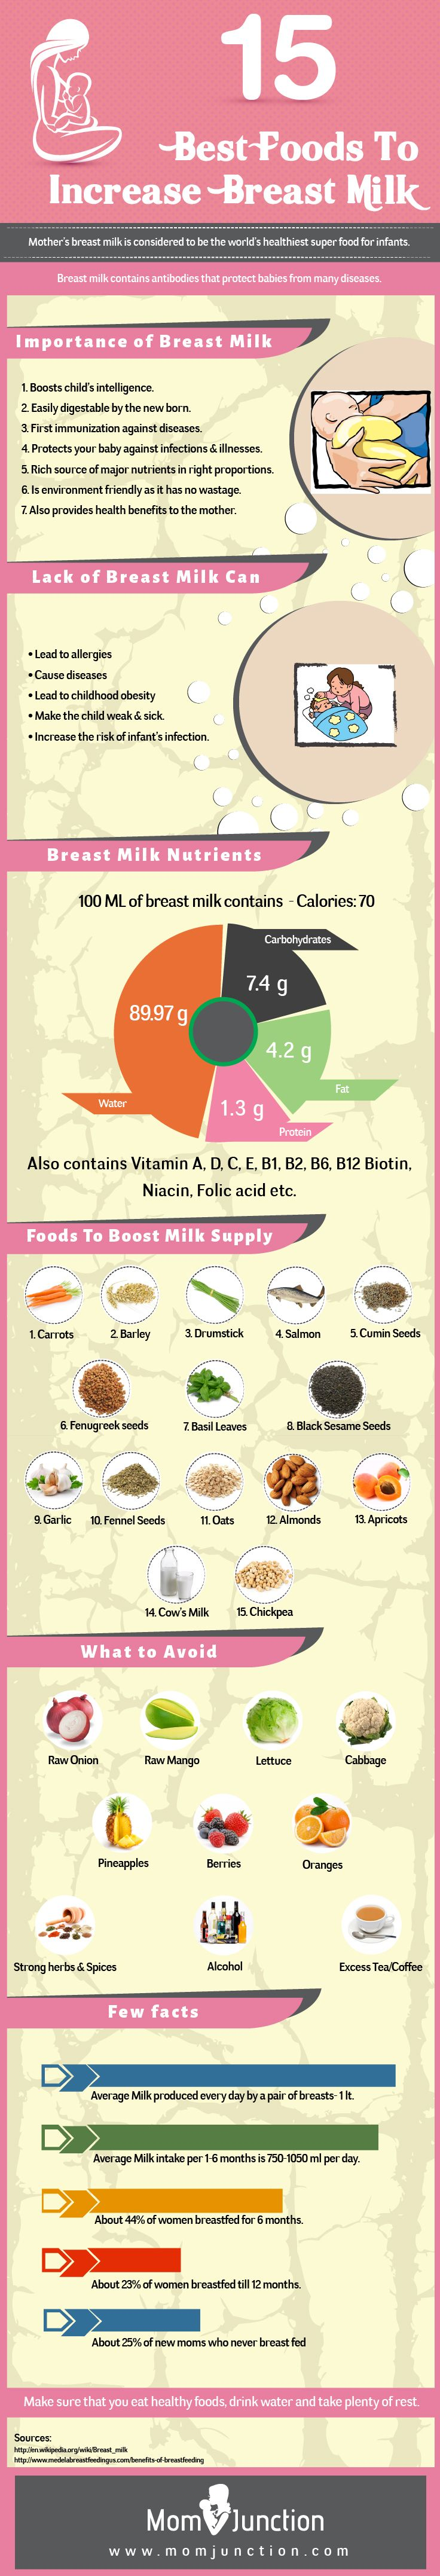 25 Best Foods To Increase Breast Milk